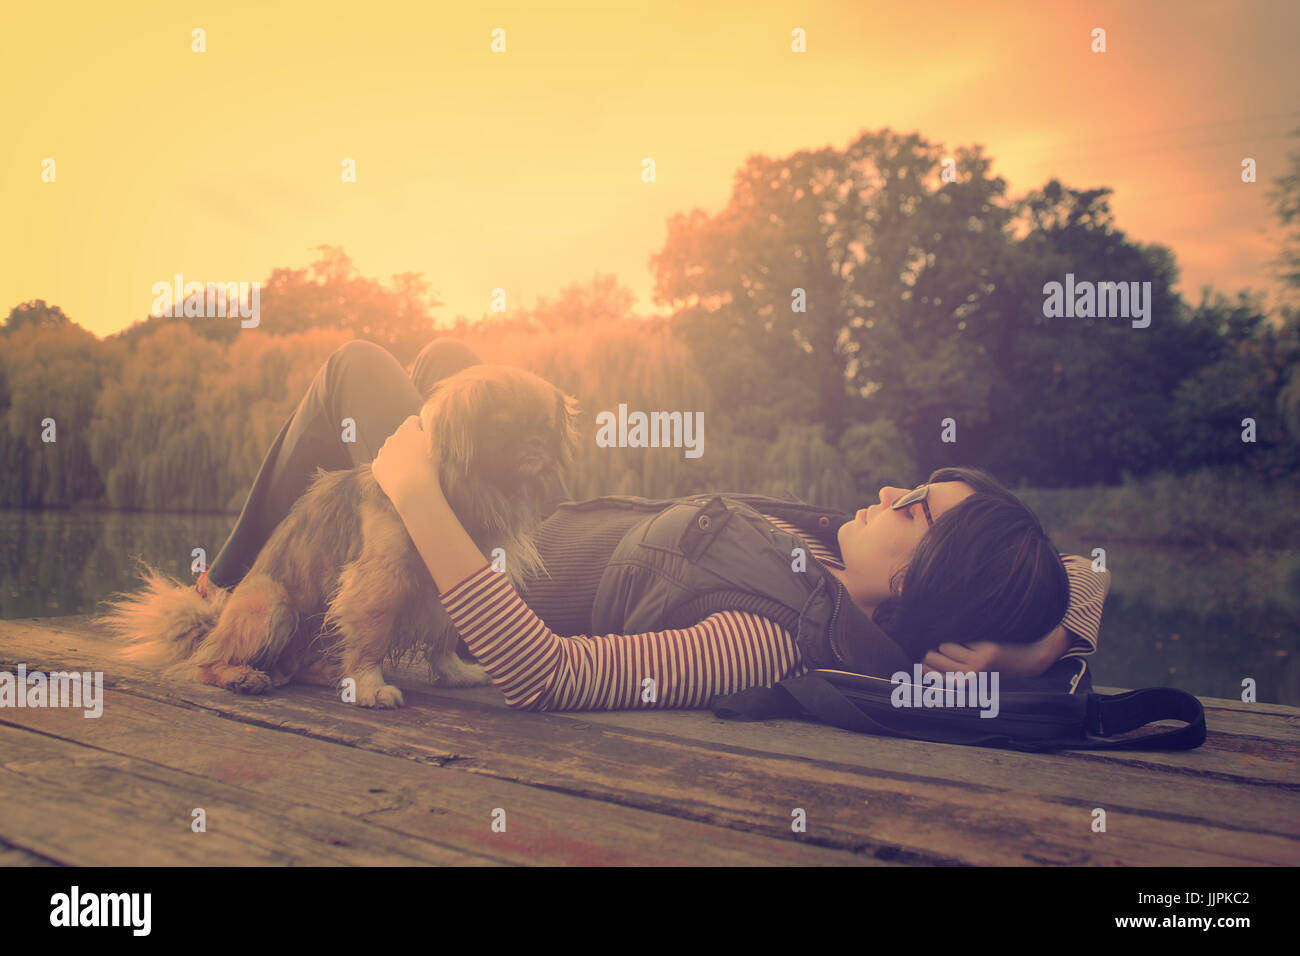 Vintage photo of relaxing woman with her dog on a pier Stock Photo